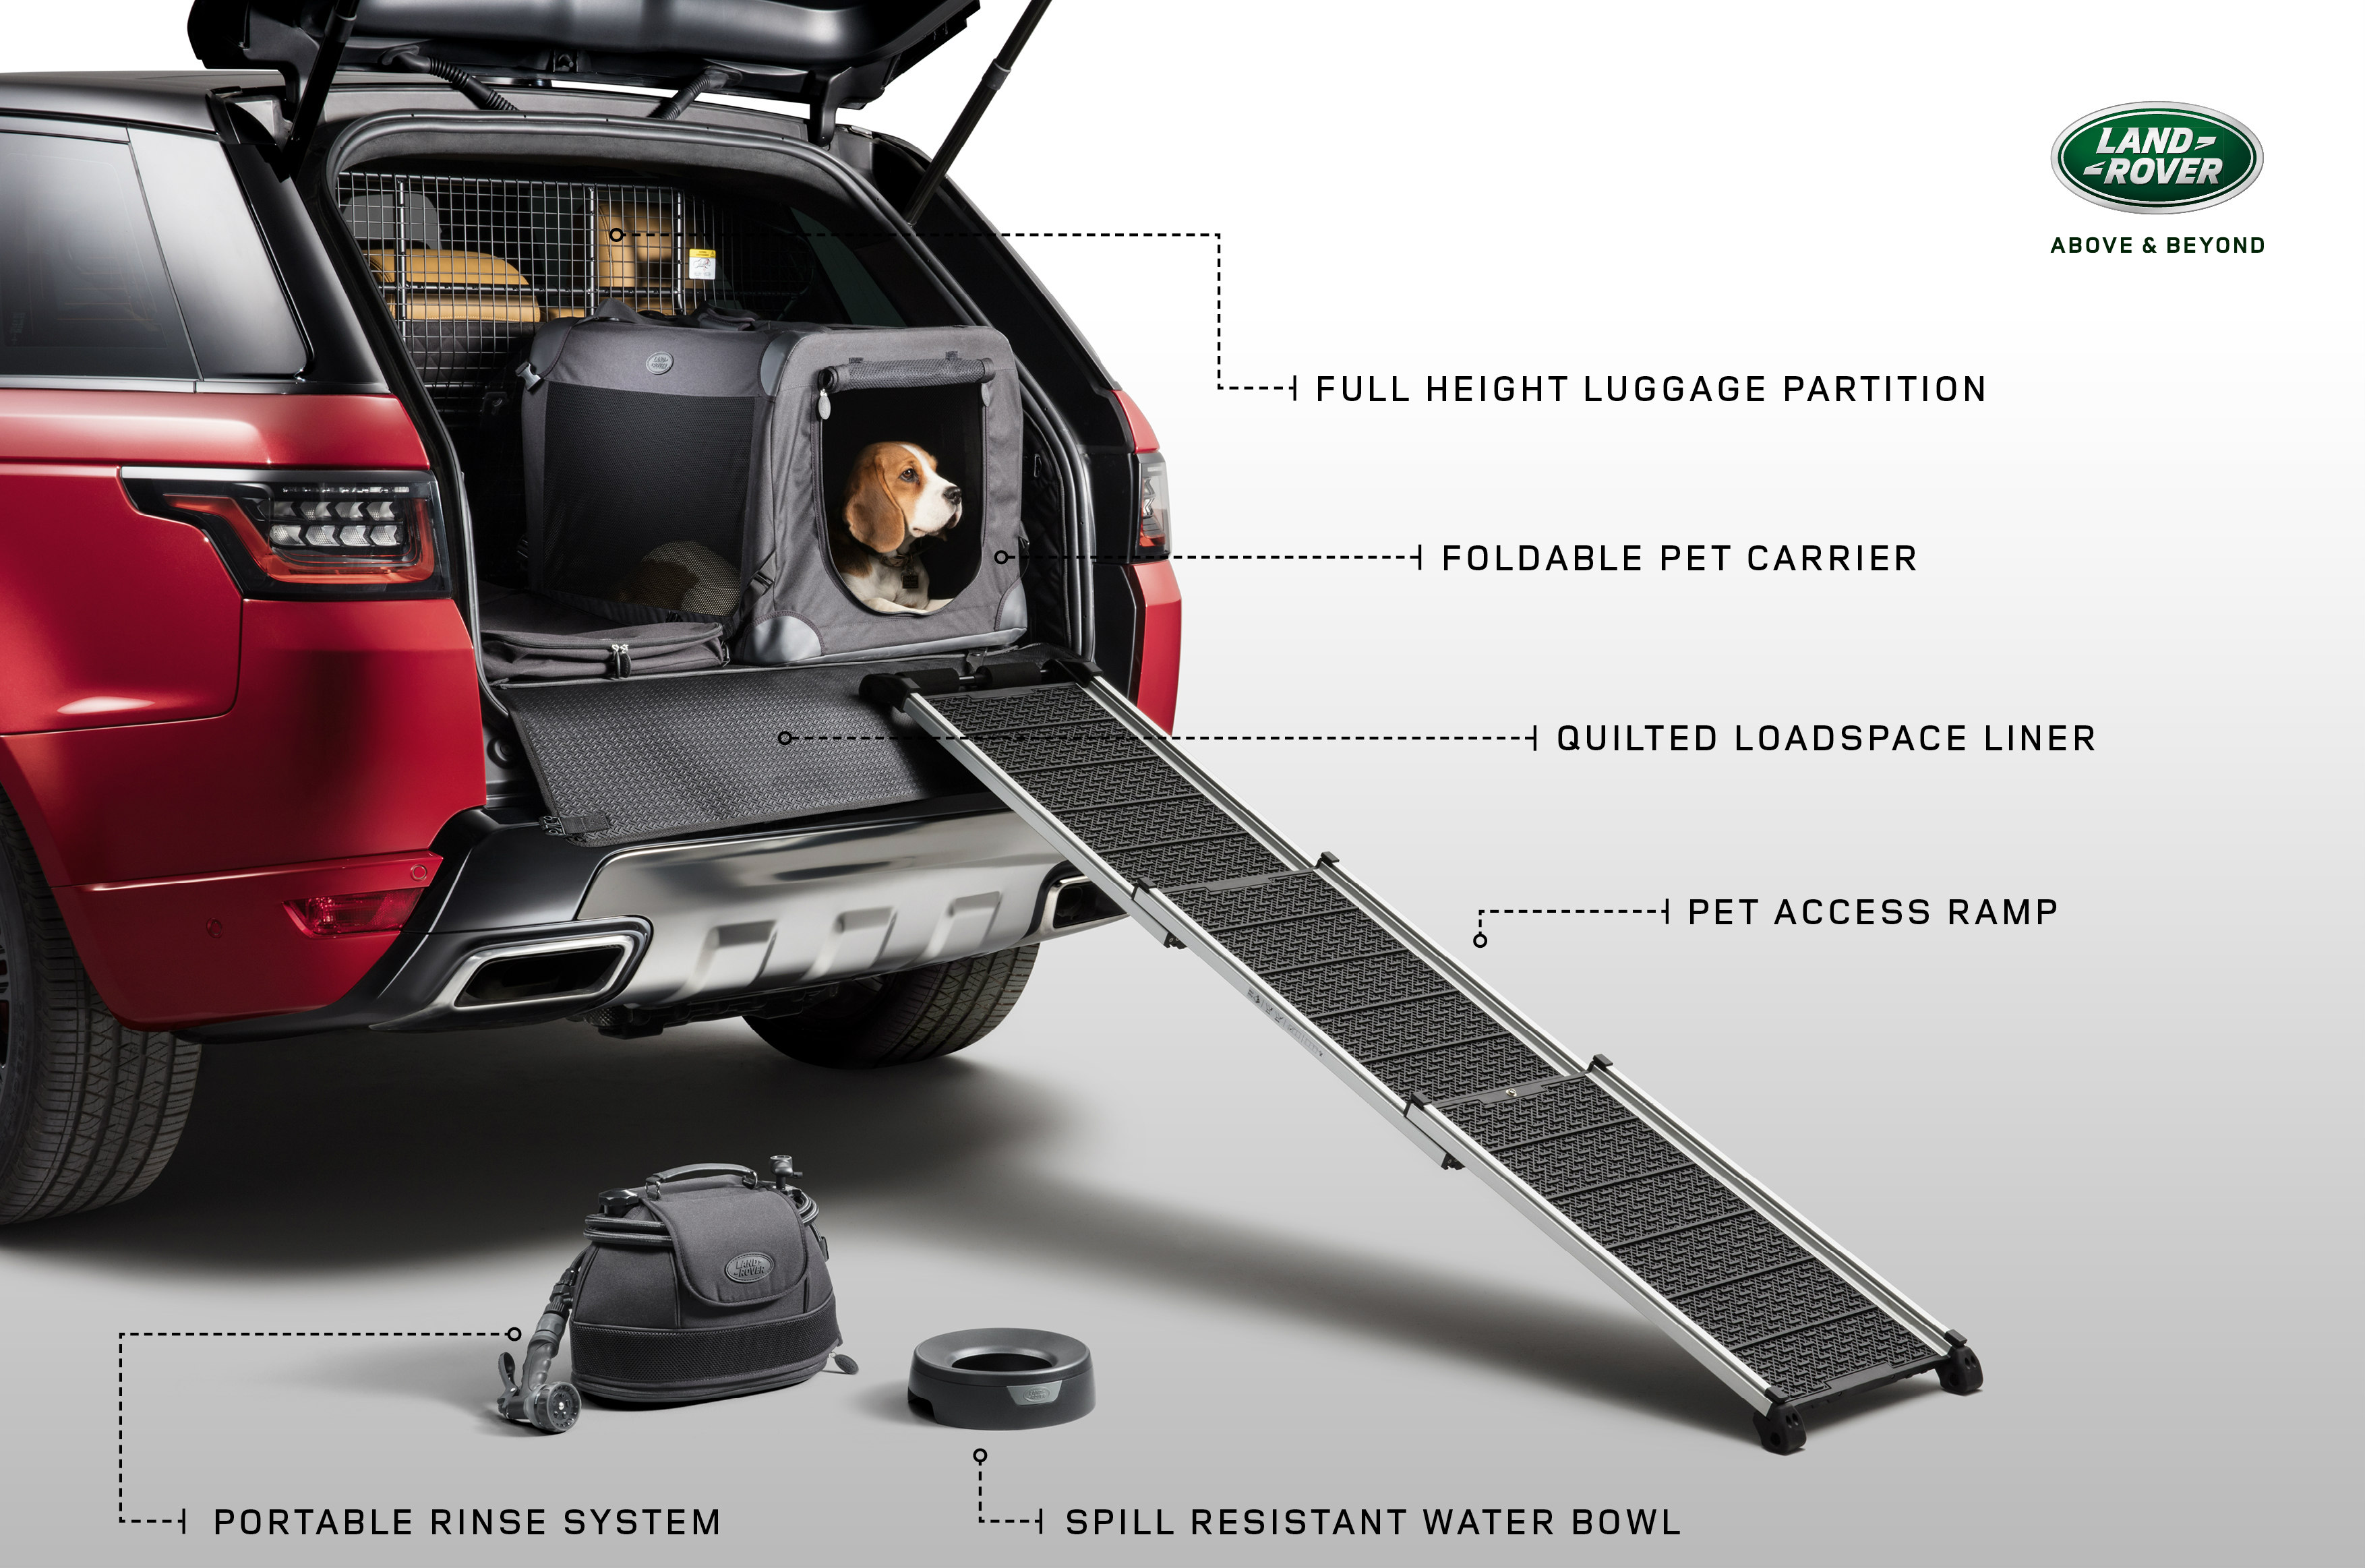 Land Rover has launched a new range of premium Pet Packs to make car journeys even more comfortable for dogs, with the Land Rover Pet Packs including accessories such as a spill-resistant water bowl, access ramp, foldable pet carrier, tailored quilted loadspace liner and portable rinse system.